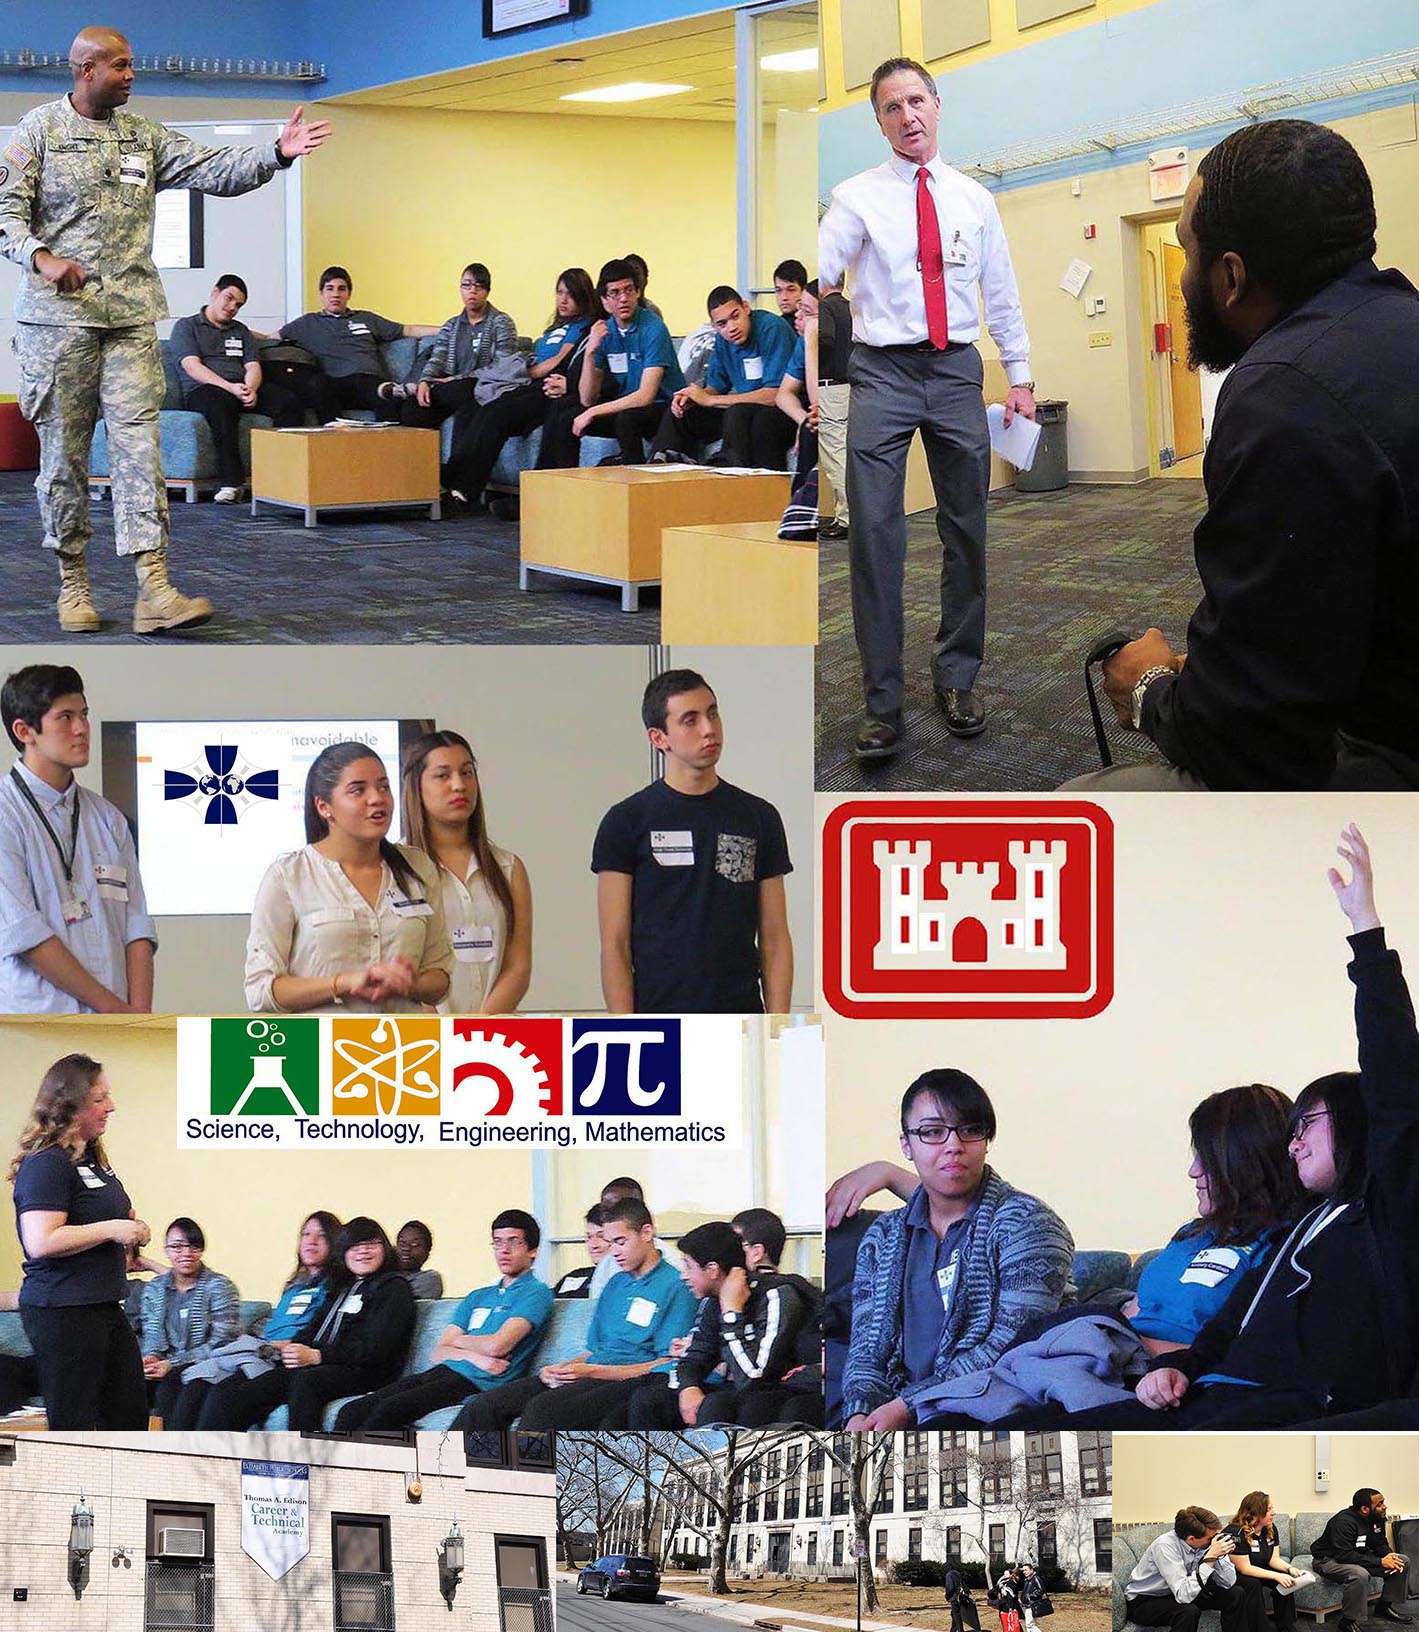 Stem School In Nj: Army Corps Participates In STEM Education At New Jersey